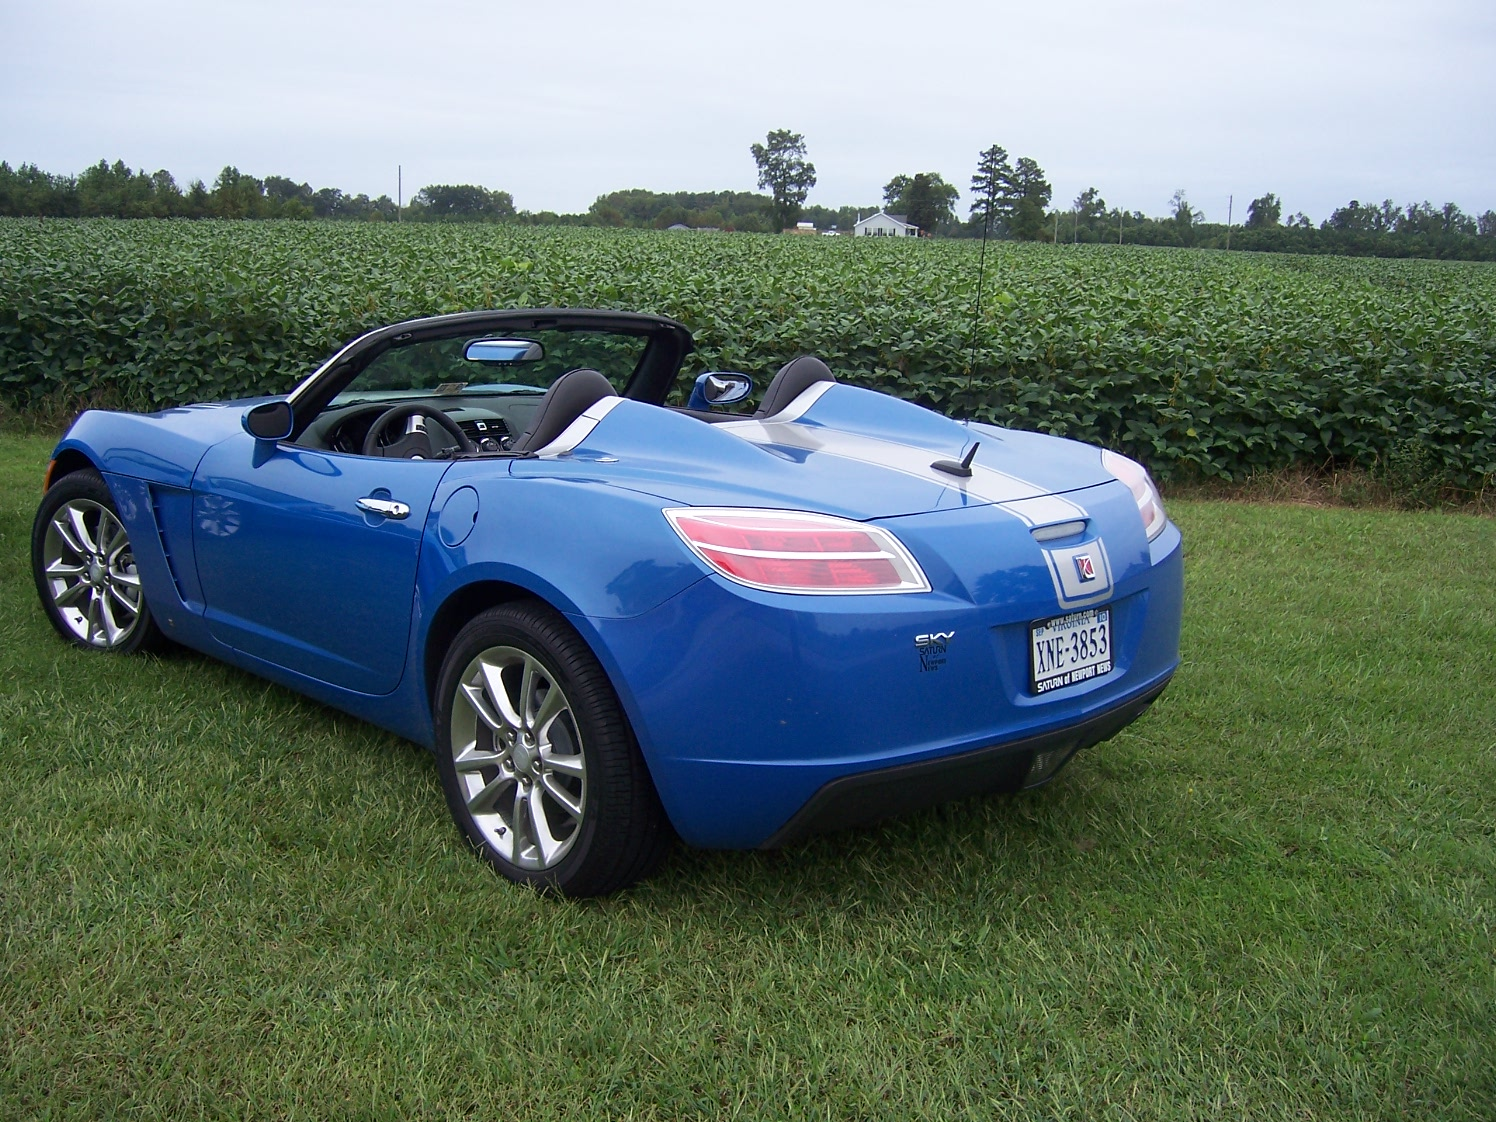 Hydro Blue 2009 limited edition saturn sky for sale-014.jpg